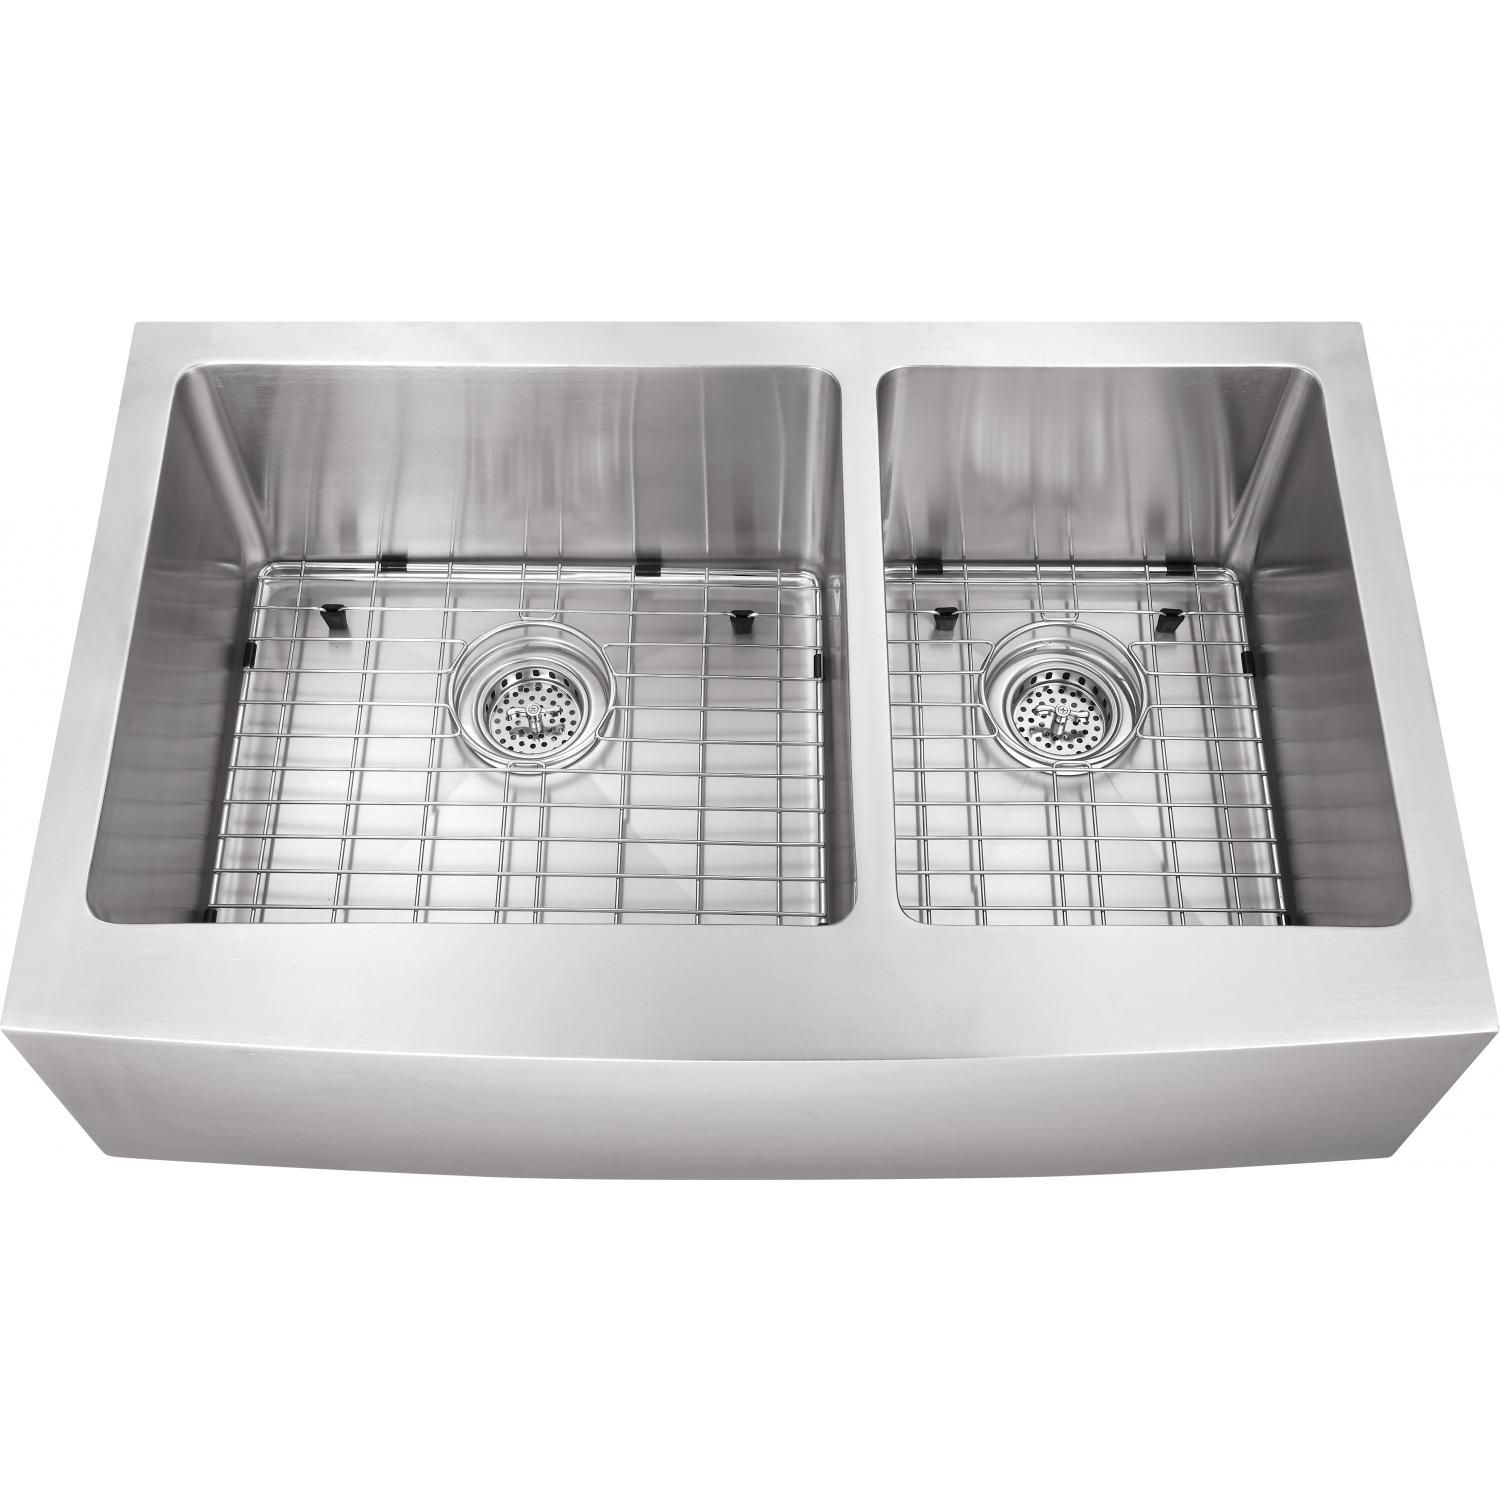 Platinum Sinks 32 X 20 16 Gauge 60 40 Double Bowl Stainless Steel Apron Undermount Sink With Strainer And Grid Double Bowl Kitchen Sink Undermount Stainless Steel Sink Sink